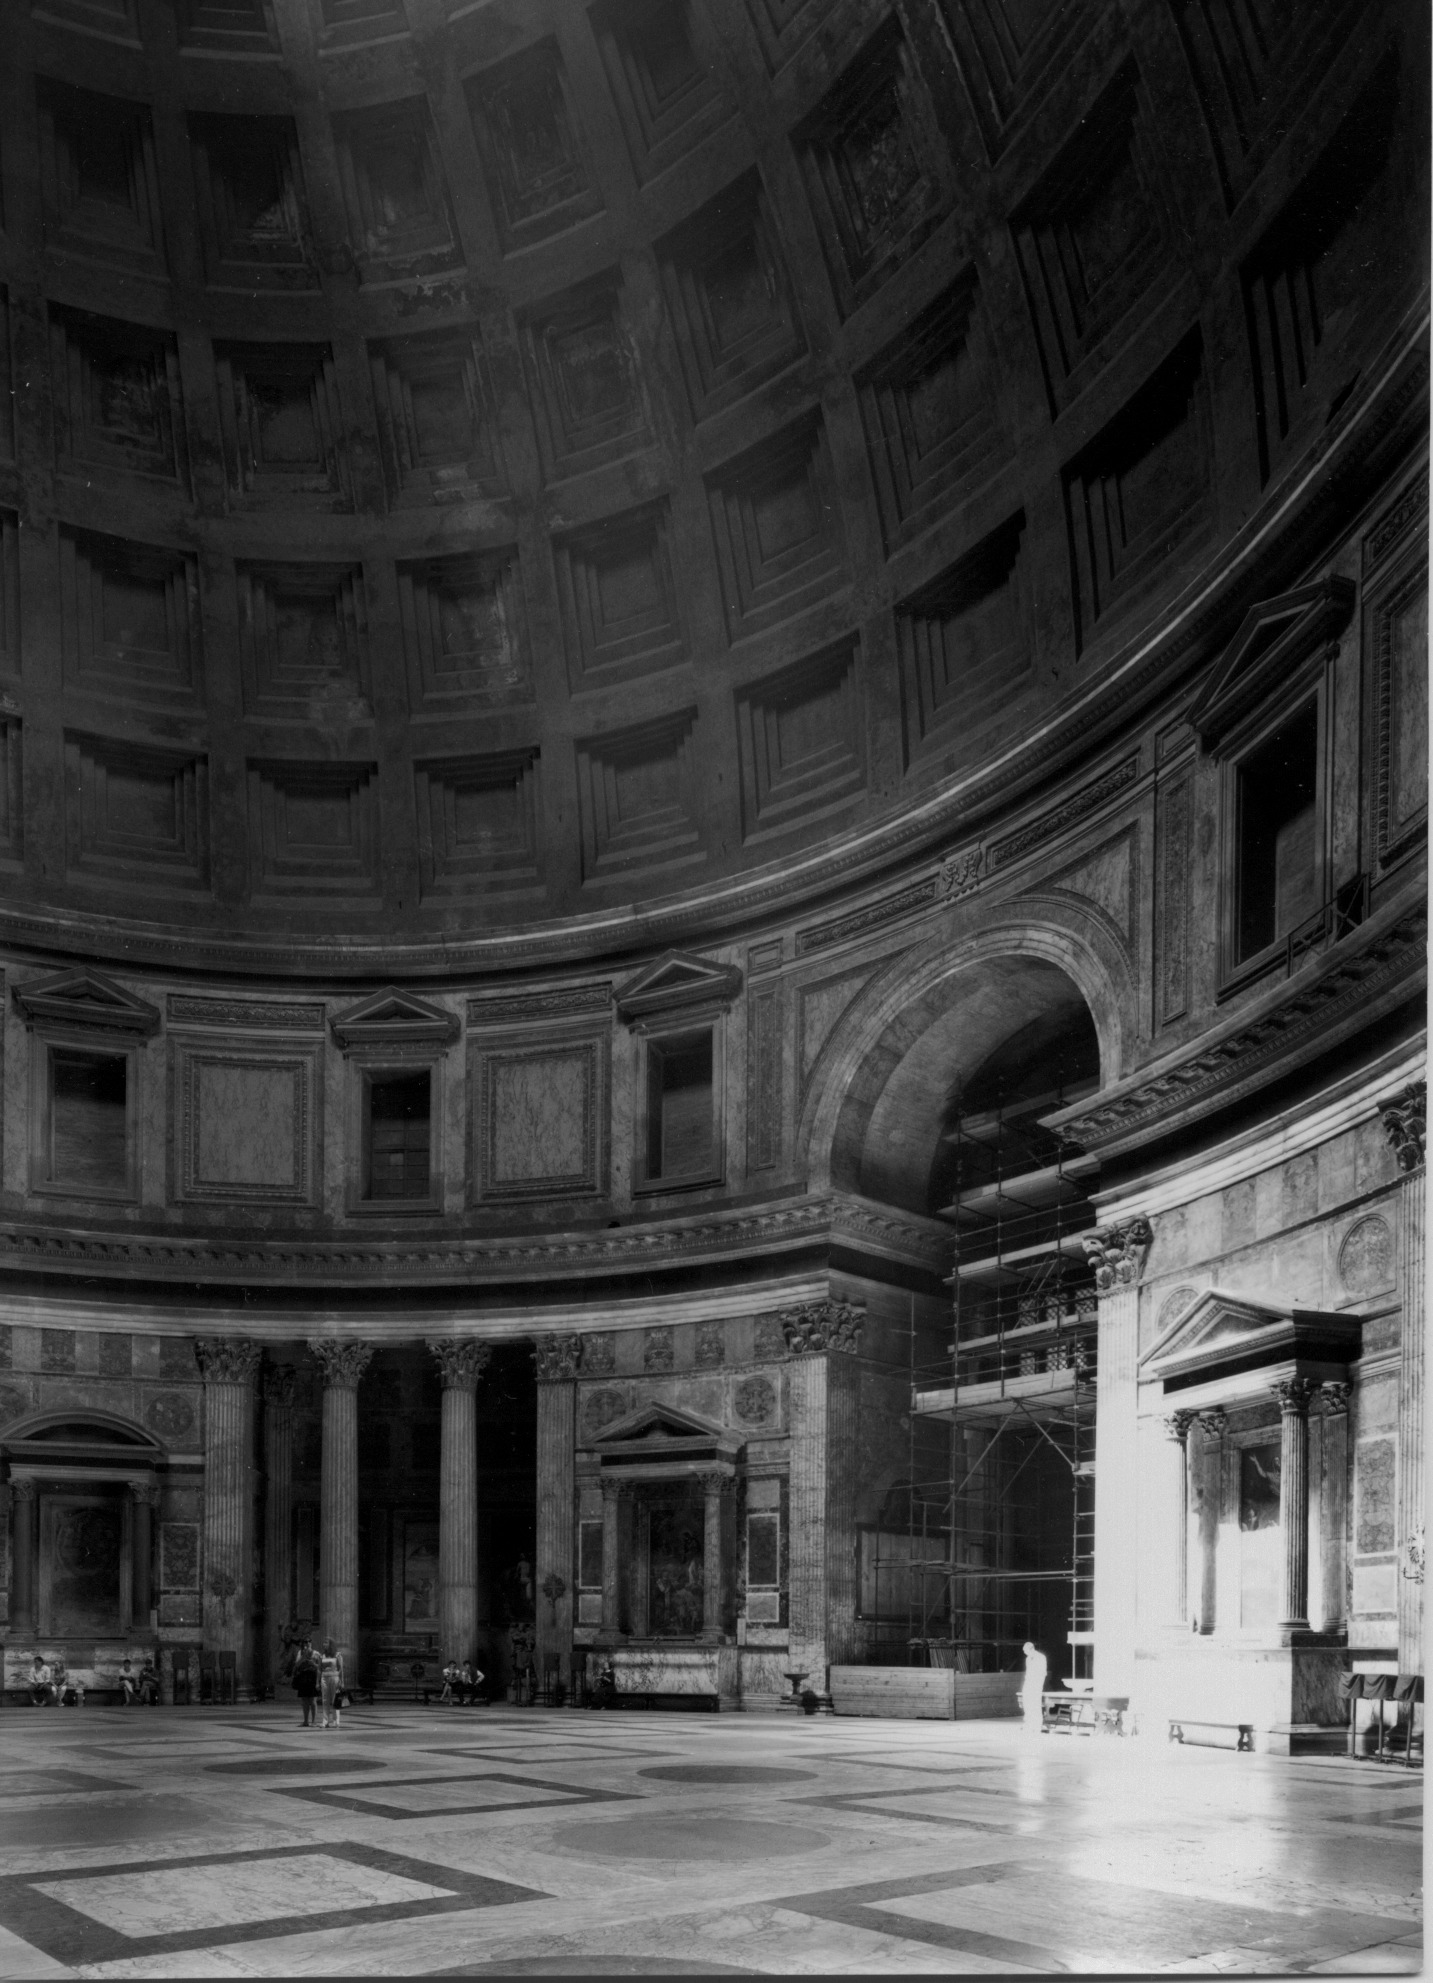 Thomas Struth,  Pantheon, Roma , 1988, stampa fotografica bianco nero, 12 x 17 cm, courtesy Gagliardi Collection